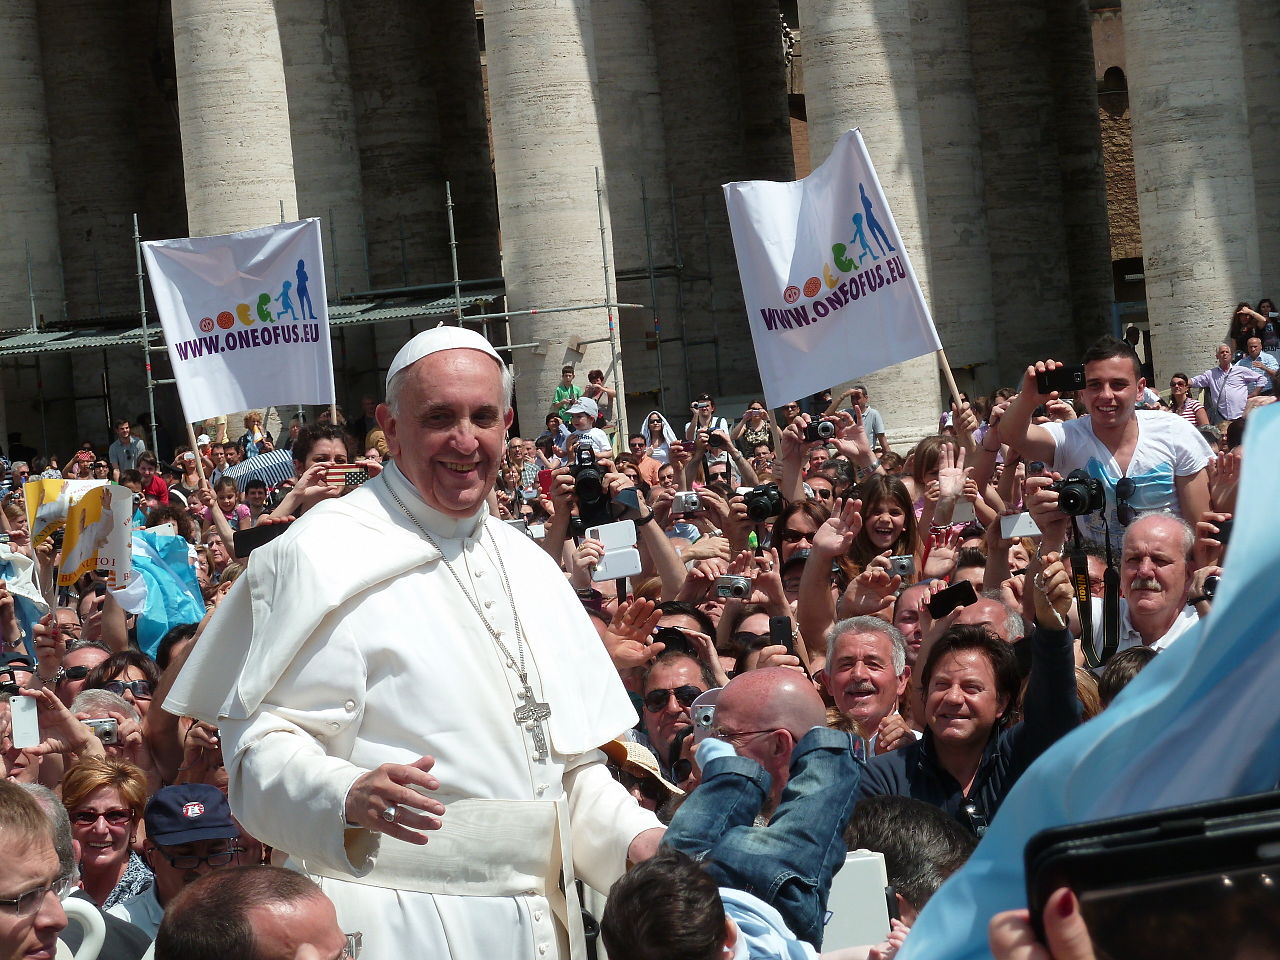 1280px-Pope_Francis_among_the_people_at_St._Peter's_Square_-_12_May_2013